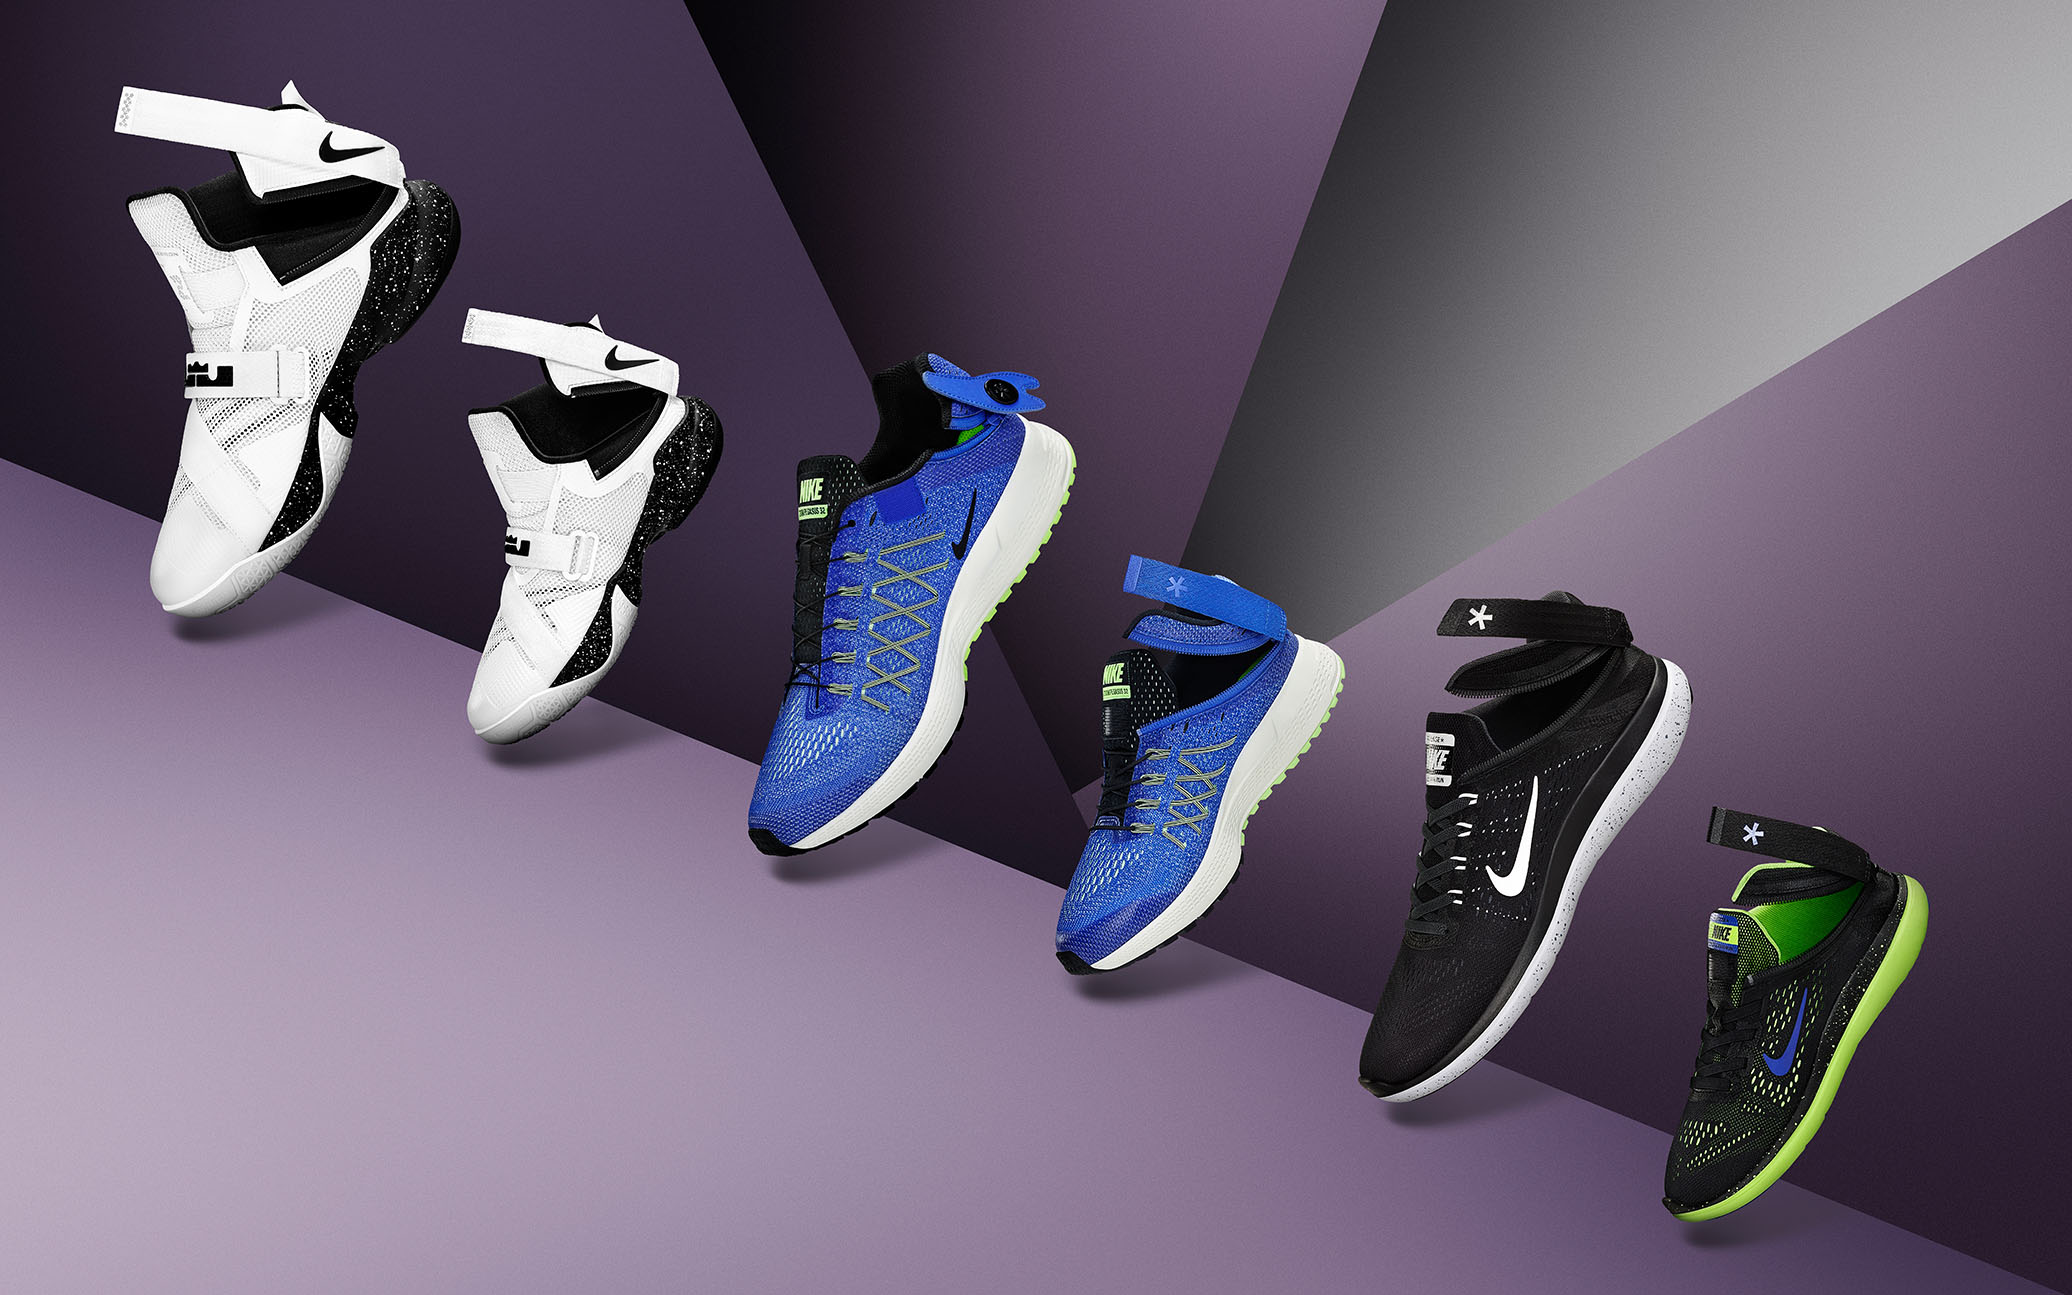 Nike Expands Shoe Line For People With